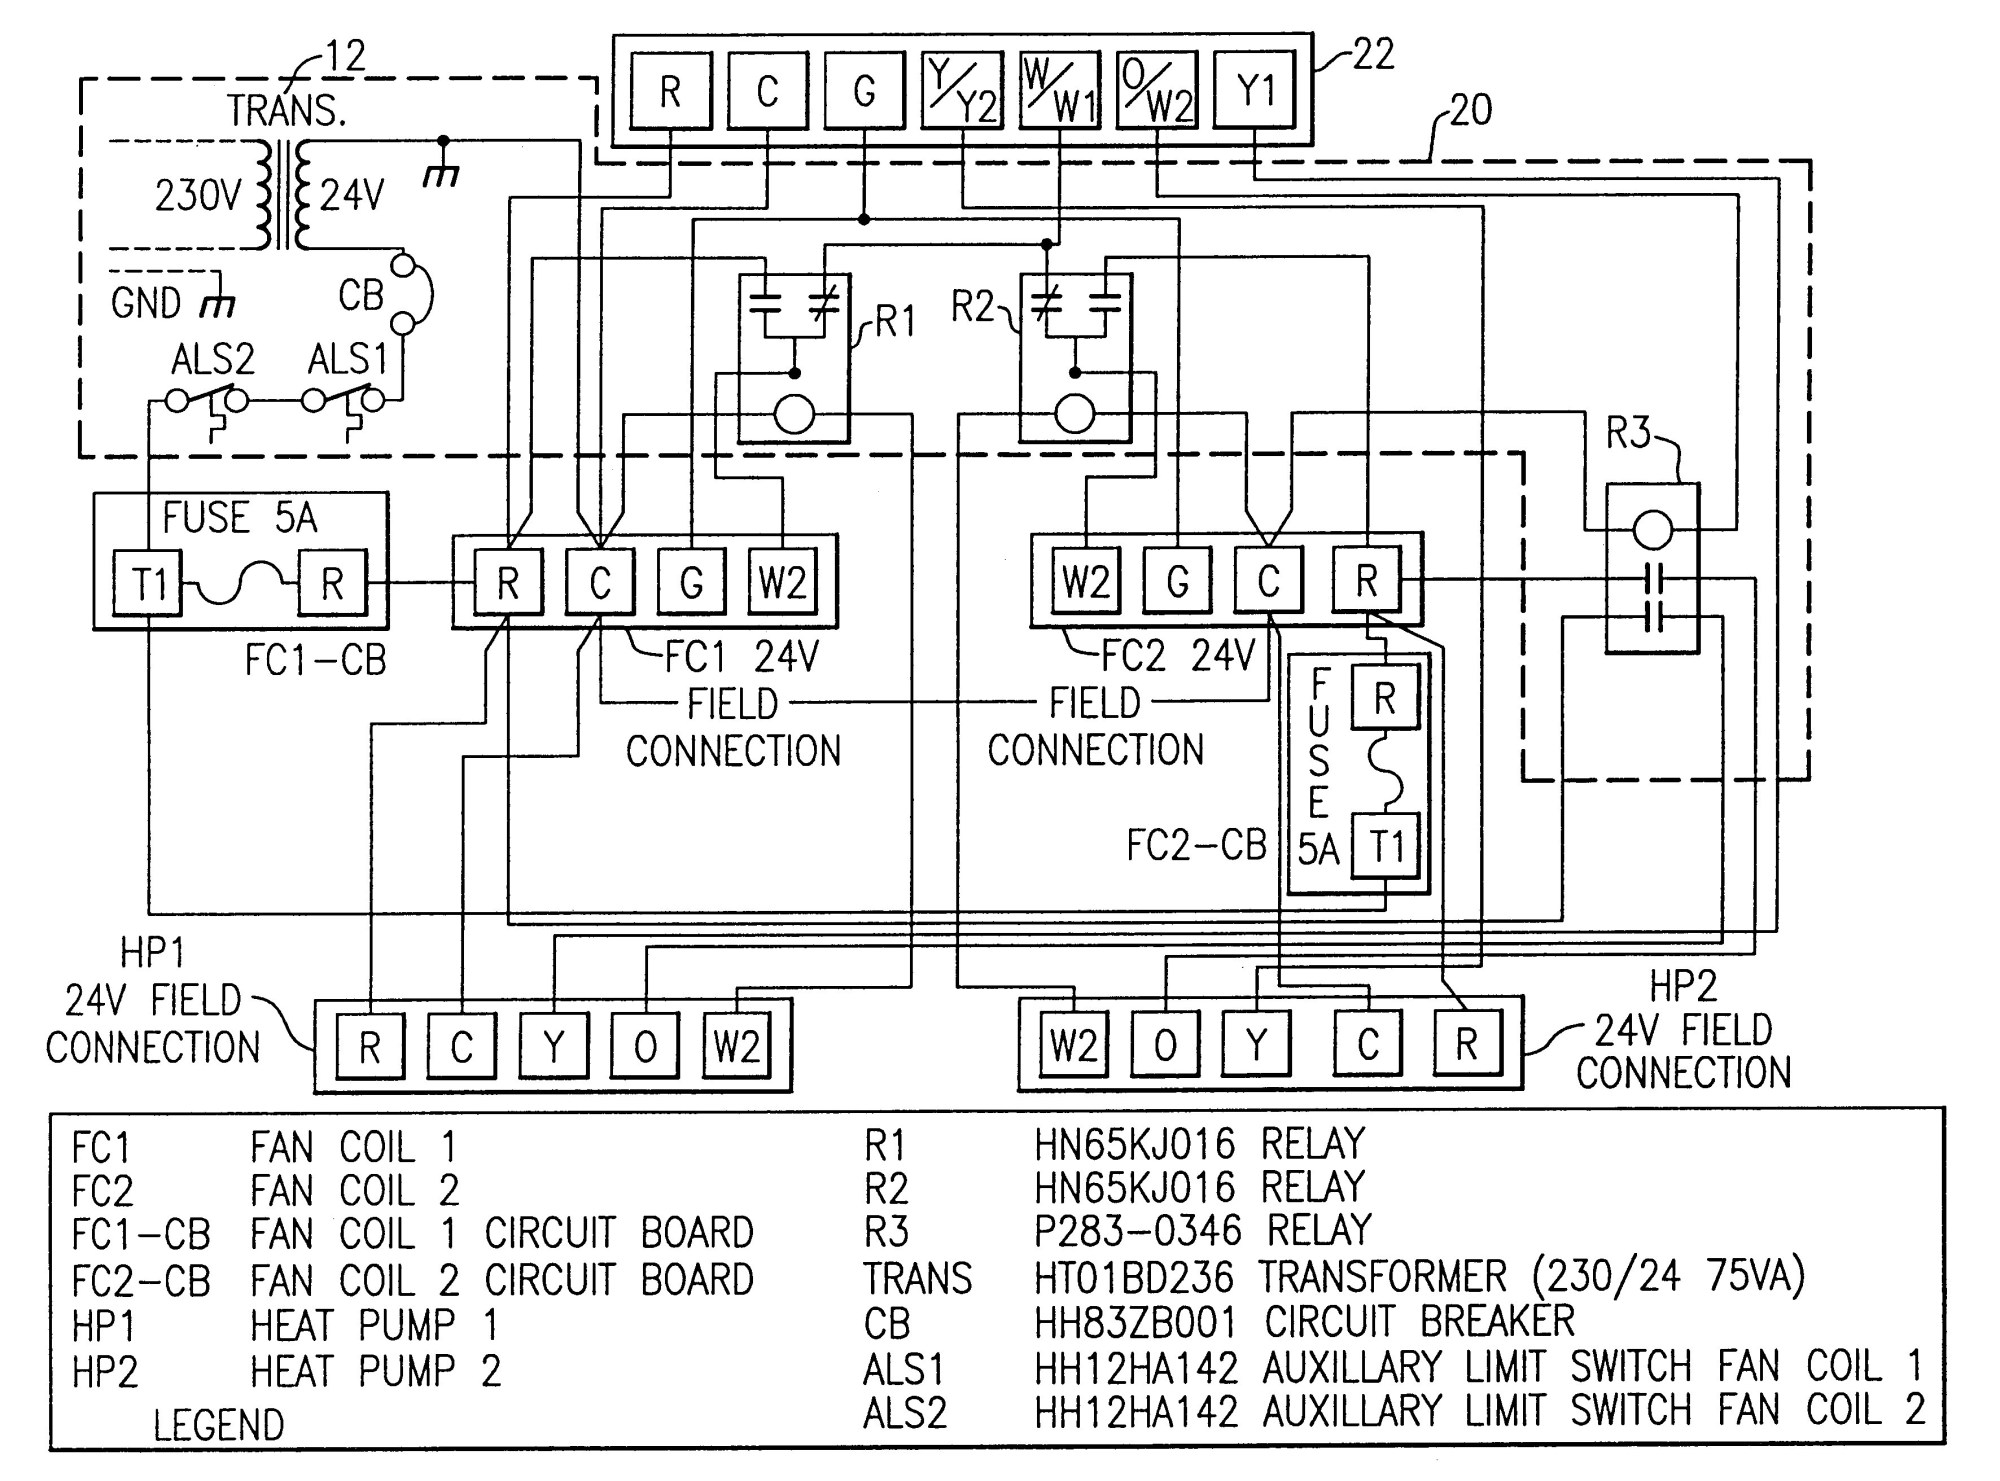 hight resolution of carrier air handler wiring diagram carrier air conditioning unit wiring diagram refrence goodman air handler